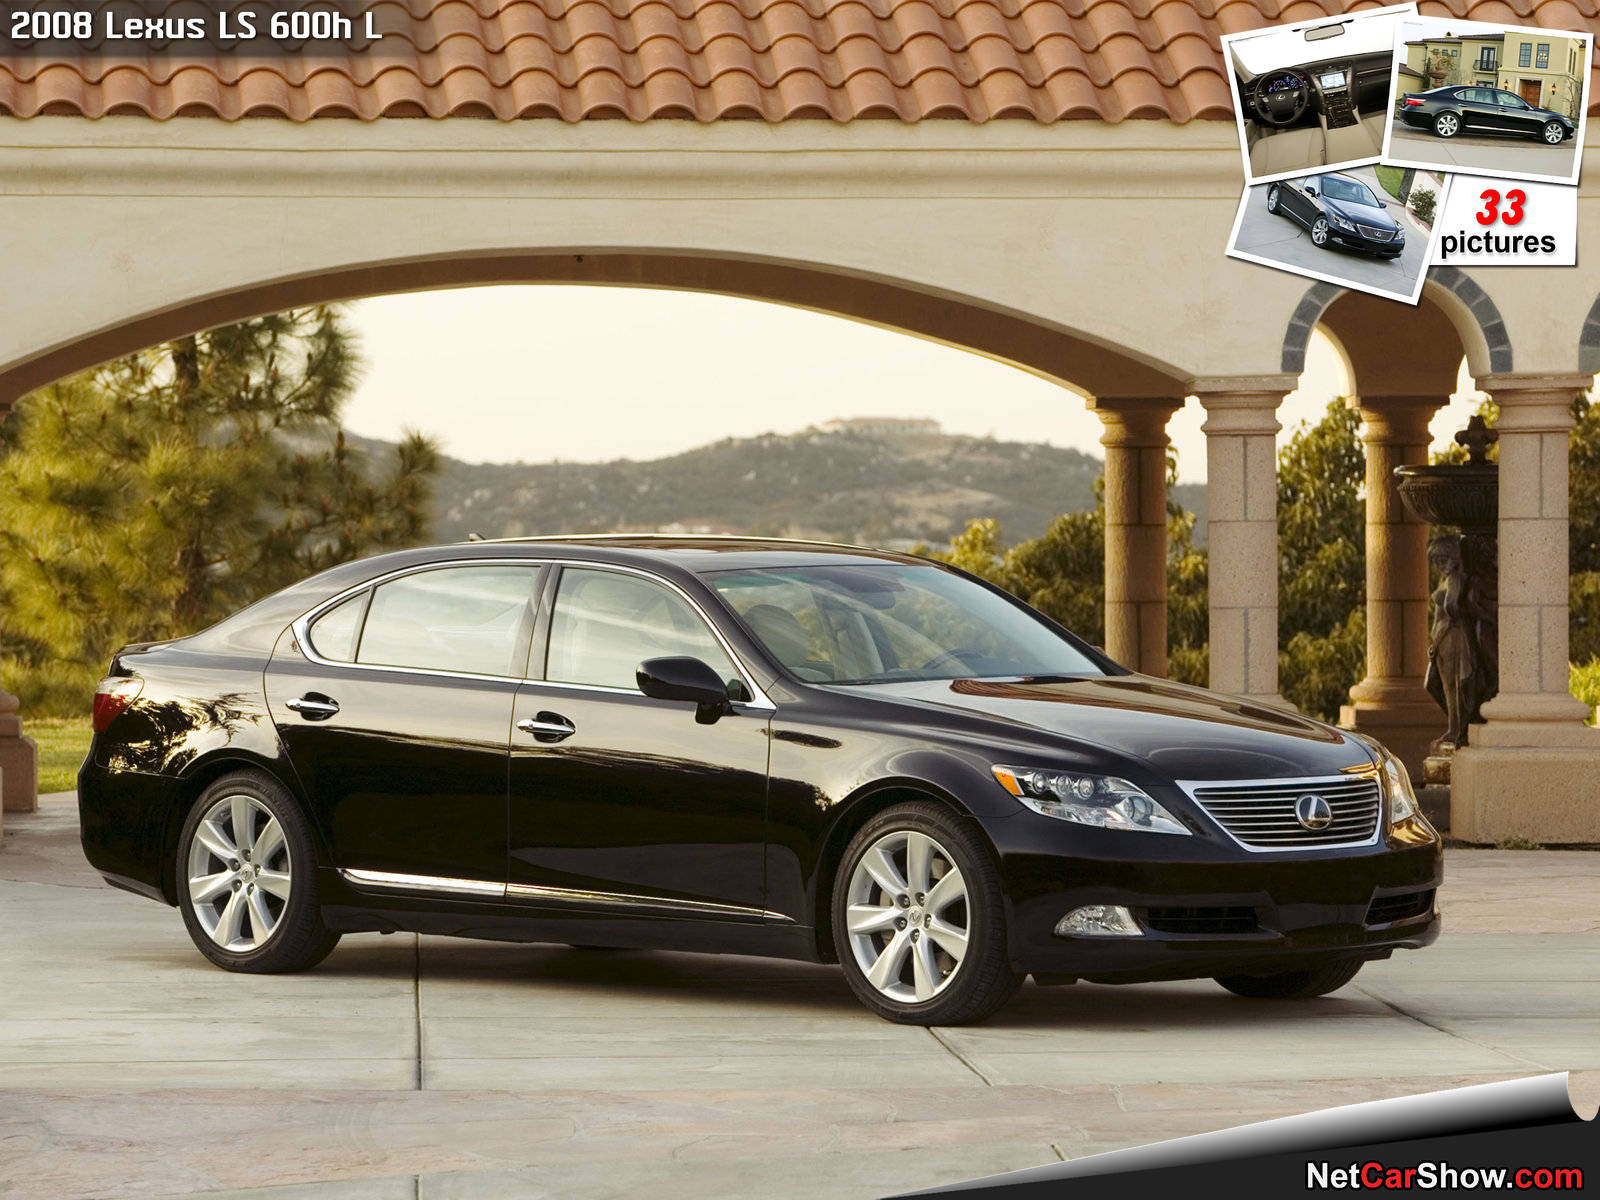 Pictures of lexus ls